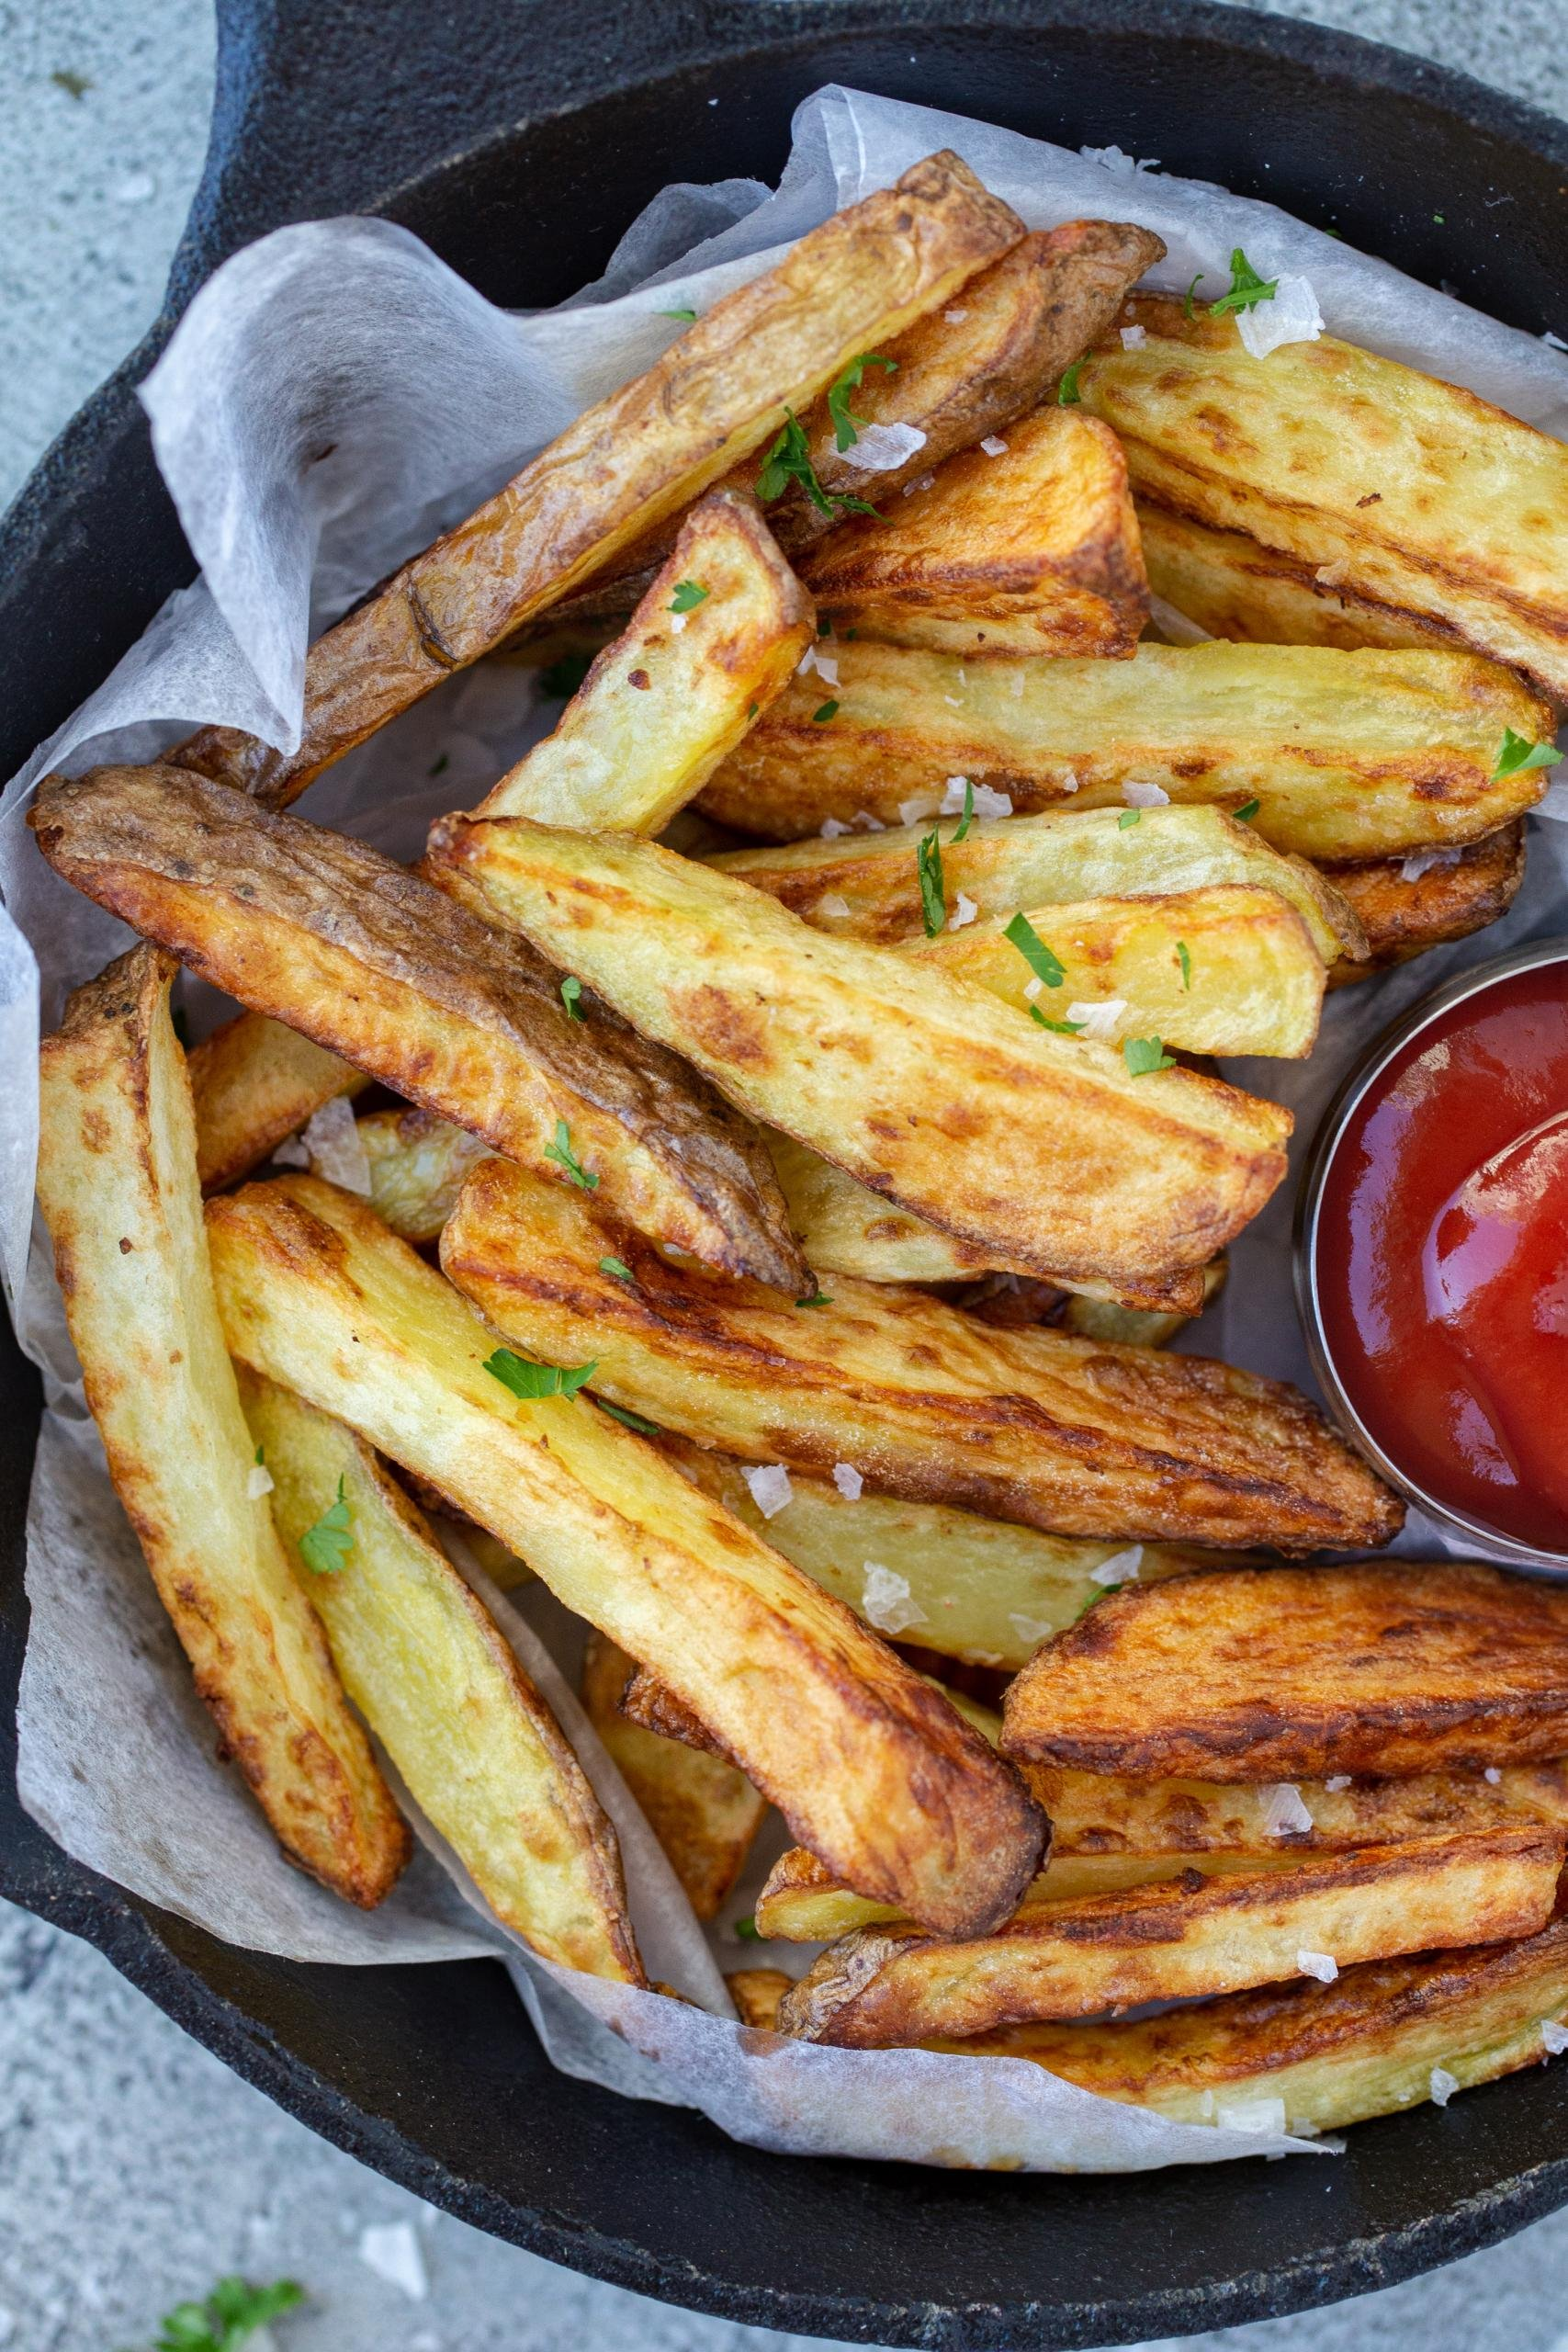 Air fryer french fries in a plate with ketchup